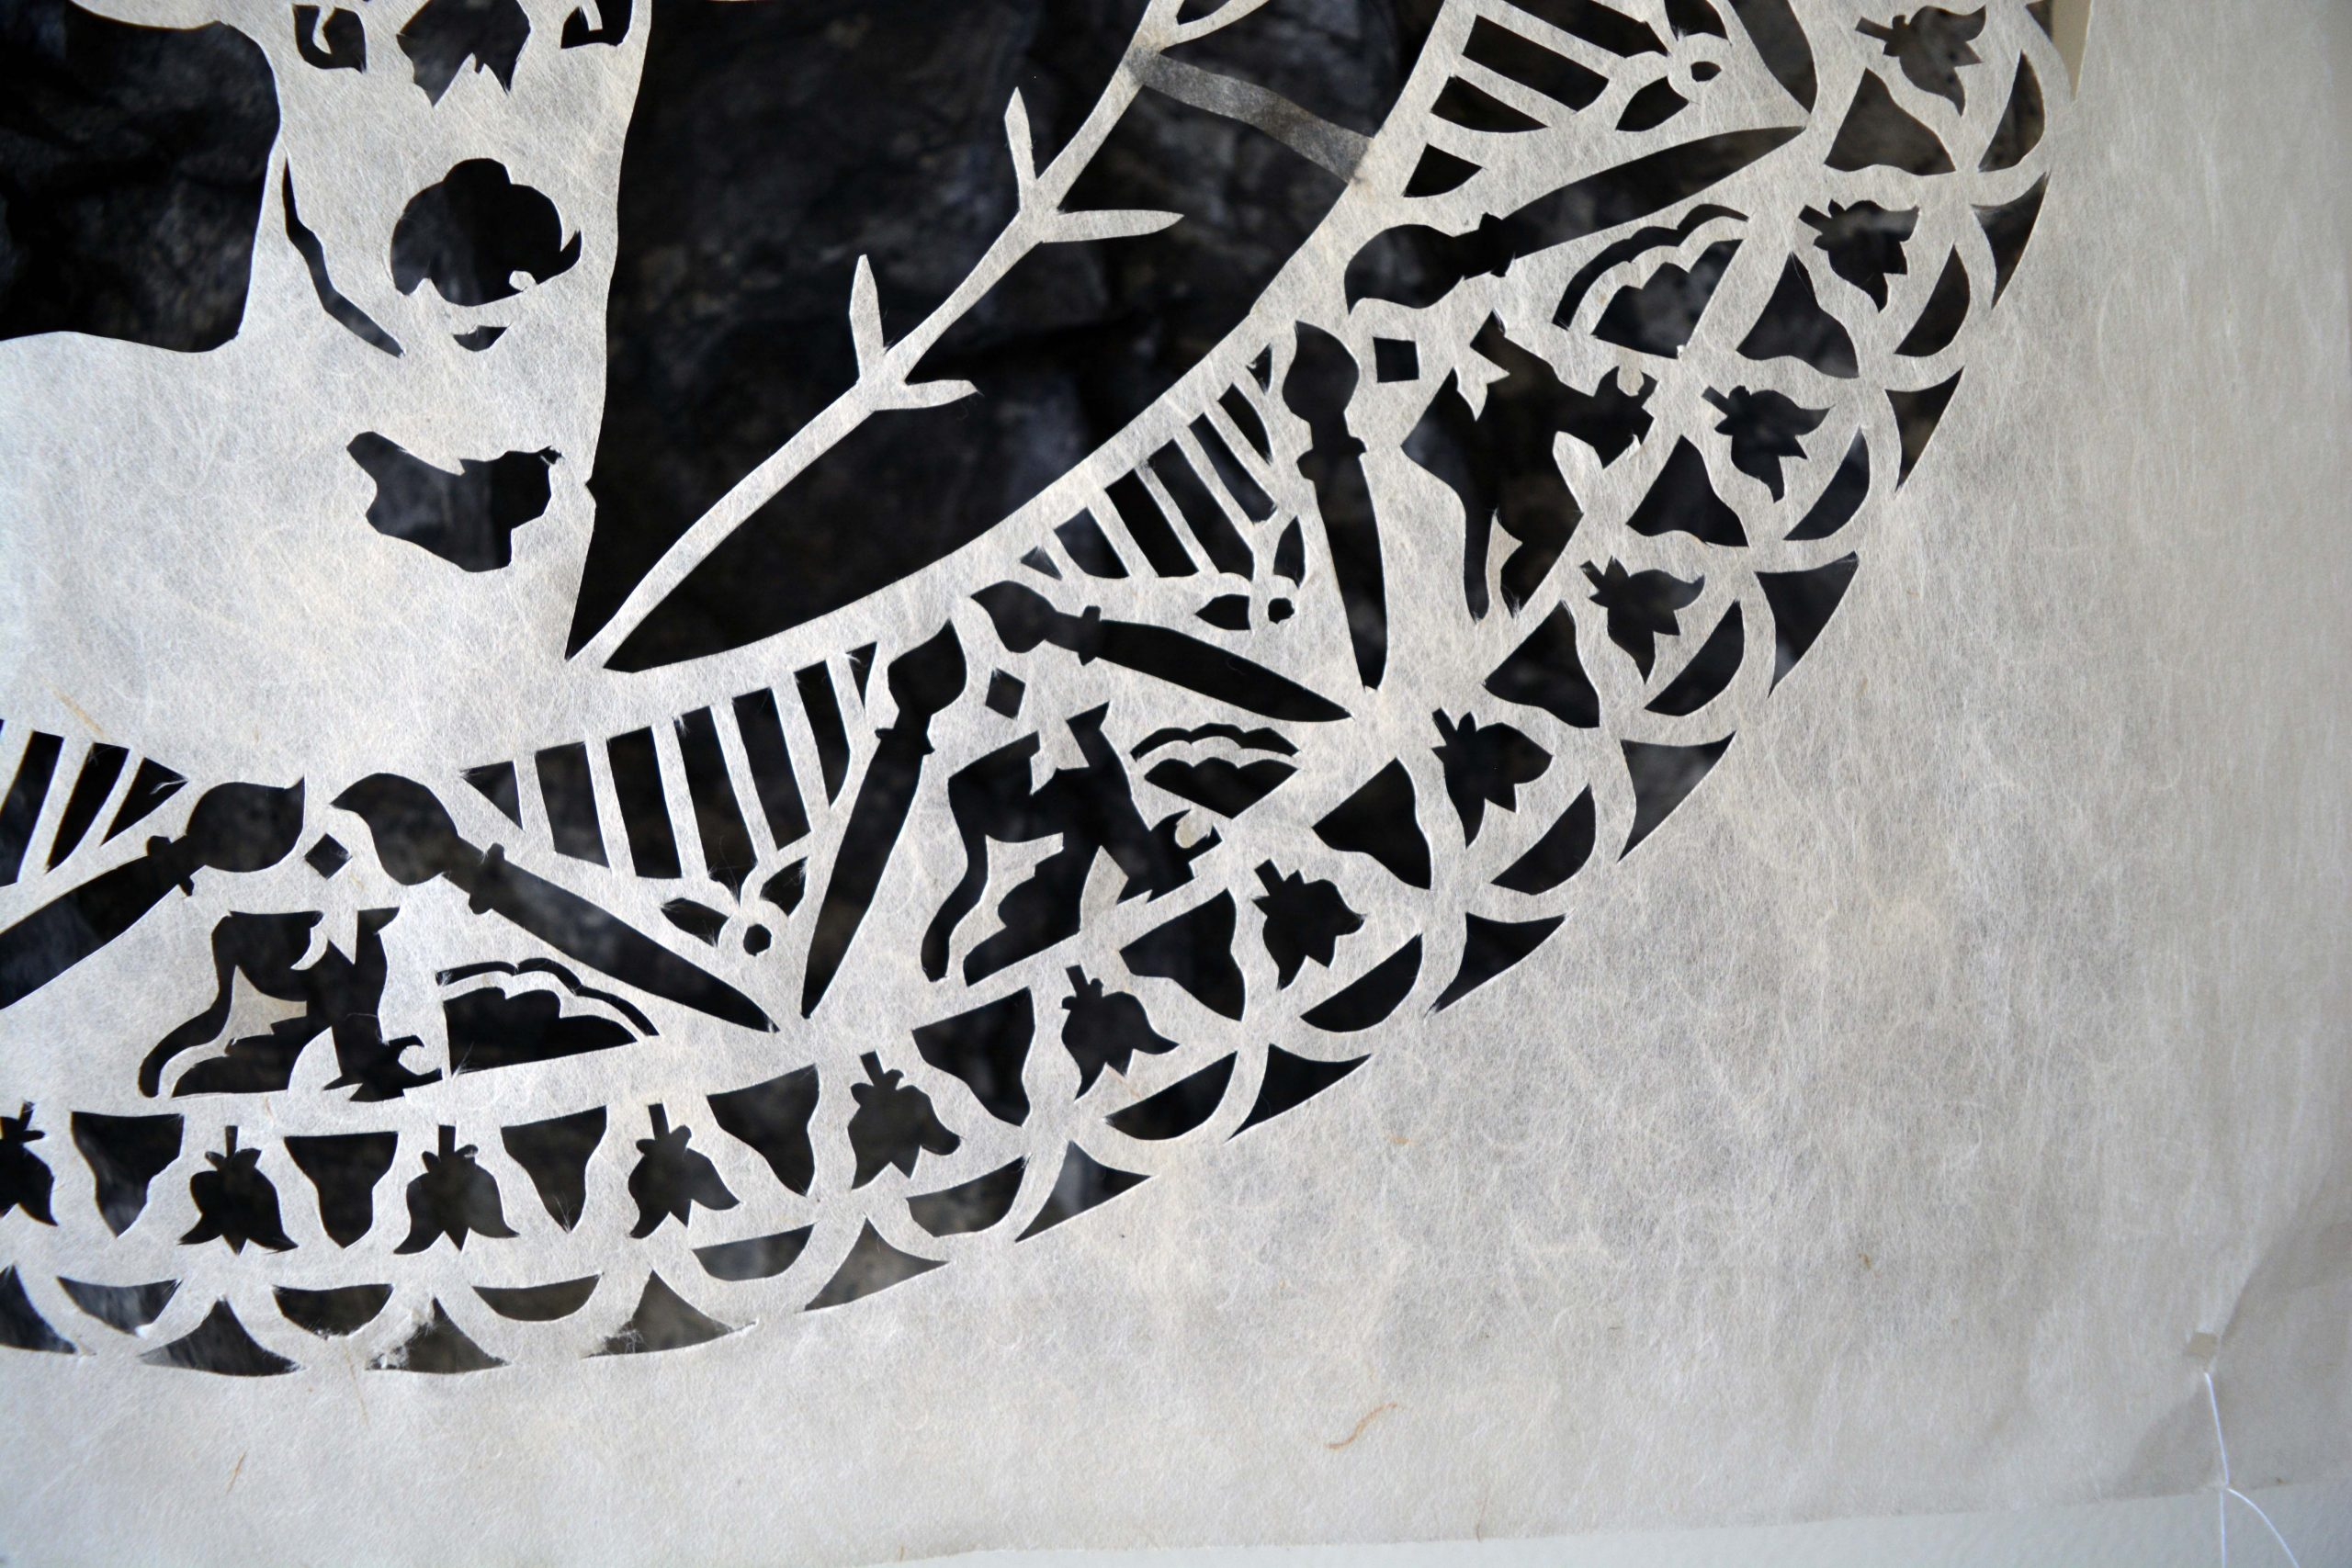 detail of kozo paper, cut with various designs, including a deer